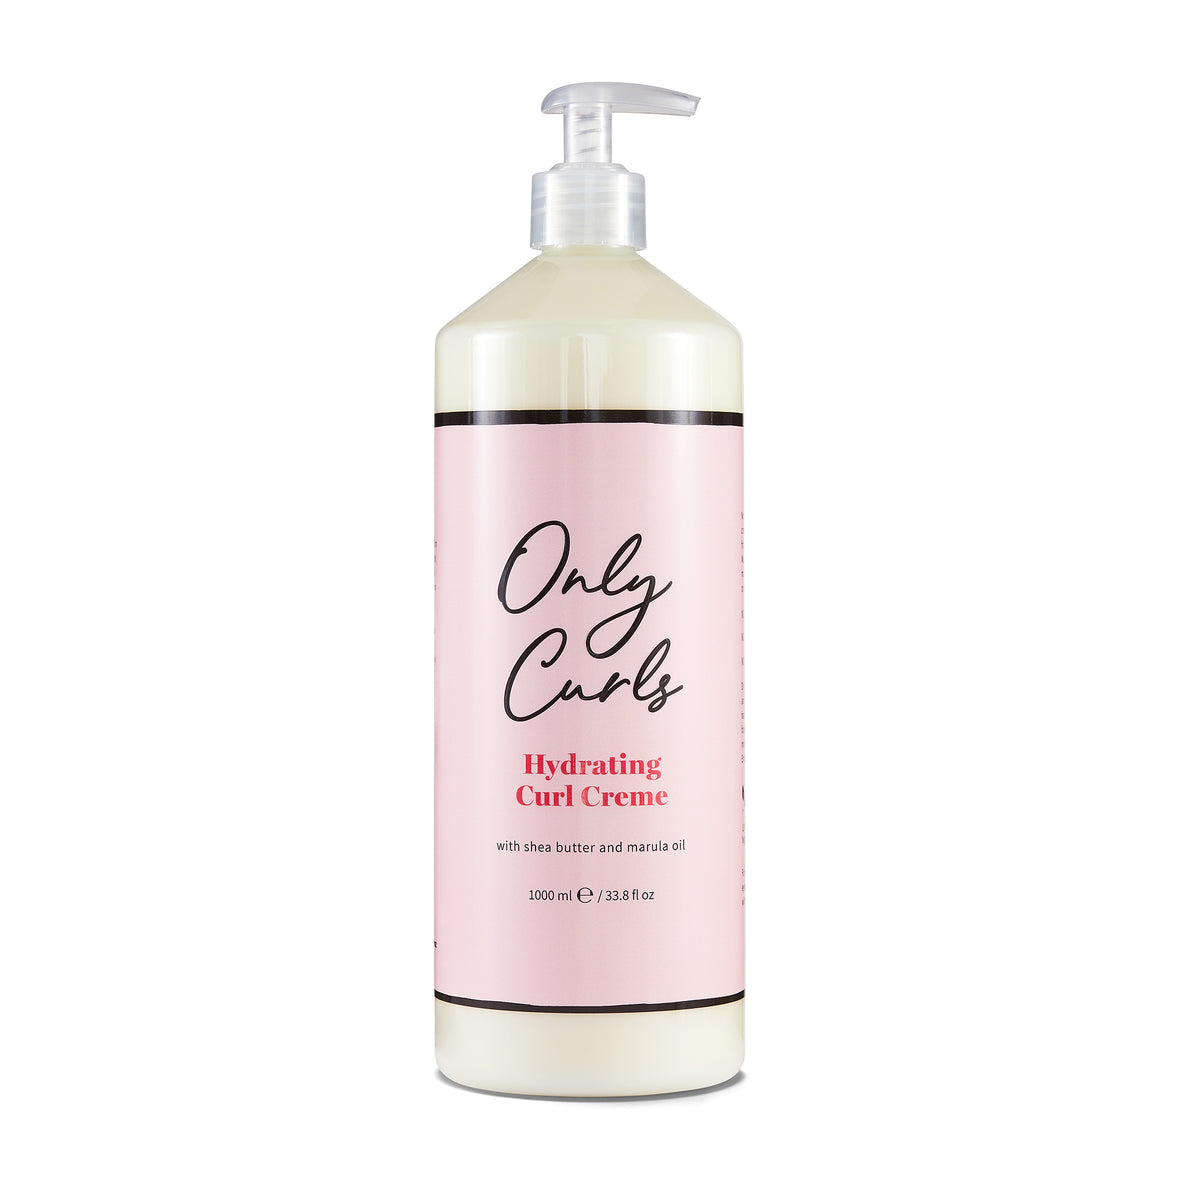 Only Curls Hydrating Curl Creme - Only Curls